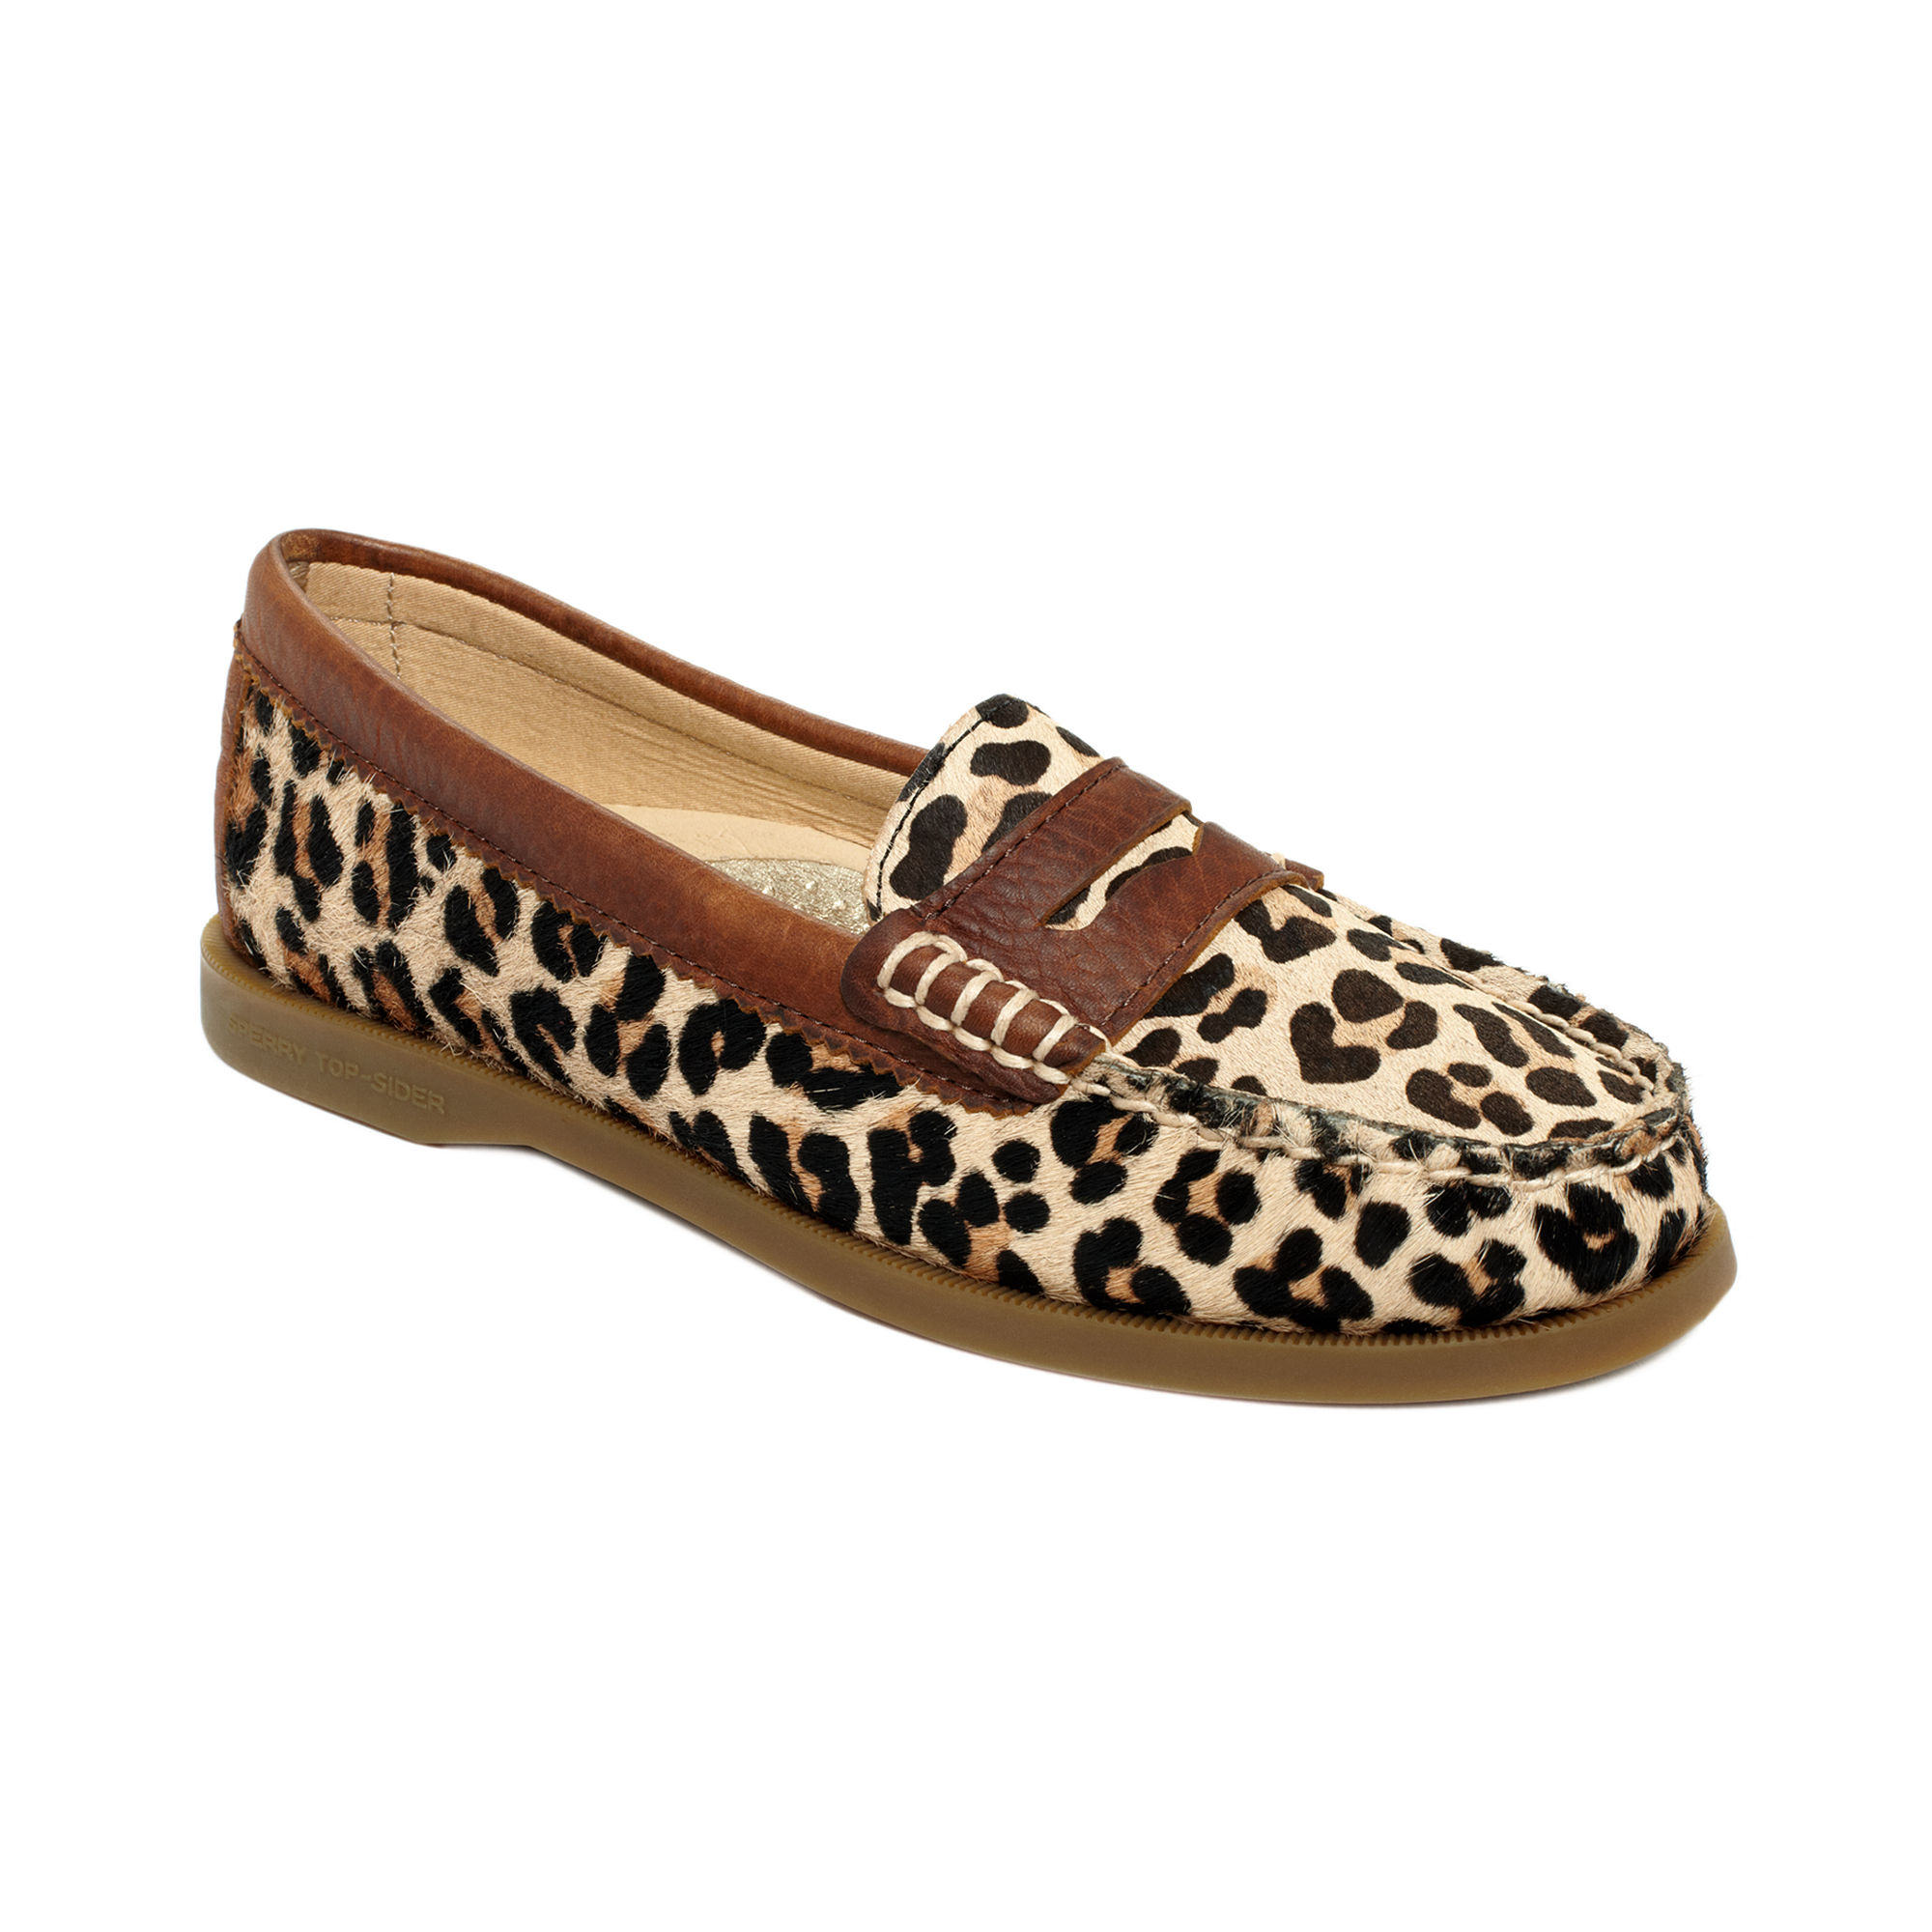 Sperry Top-sider Hayden Penny Loafer Flats in Brown ...